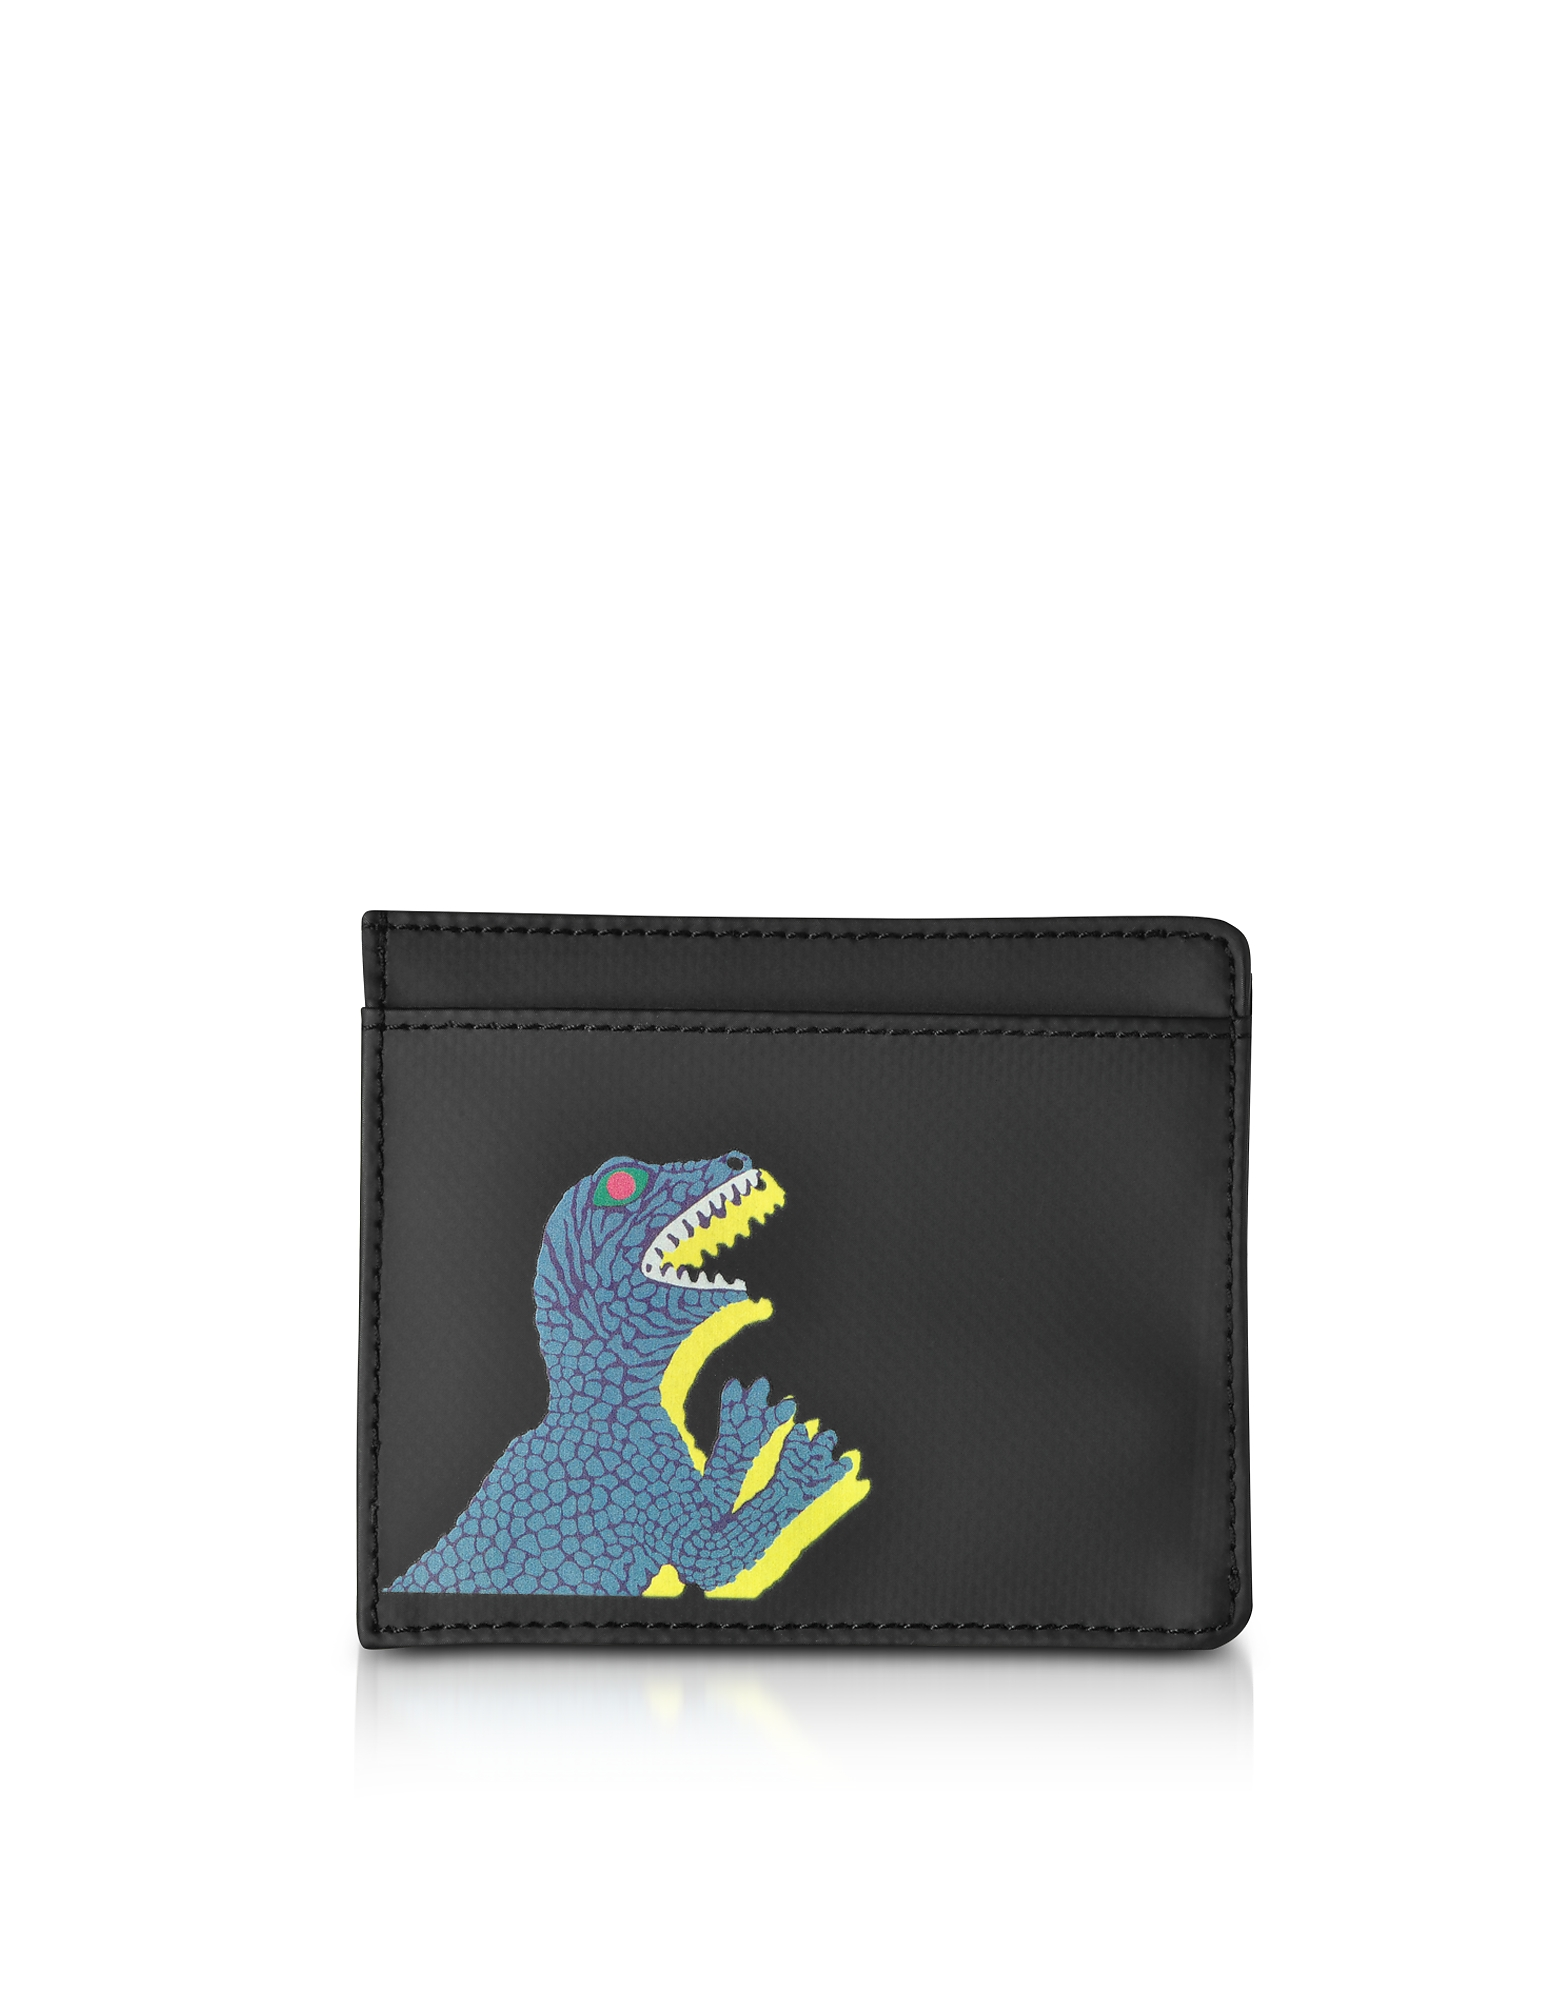 Image of Paul Smith Designer Wallets, Black Nylon and Leather Dino Card Holder